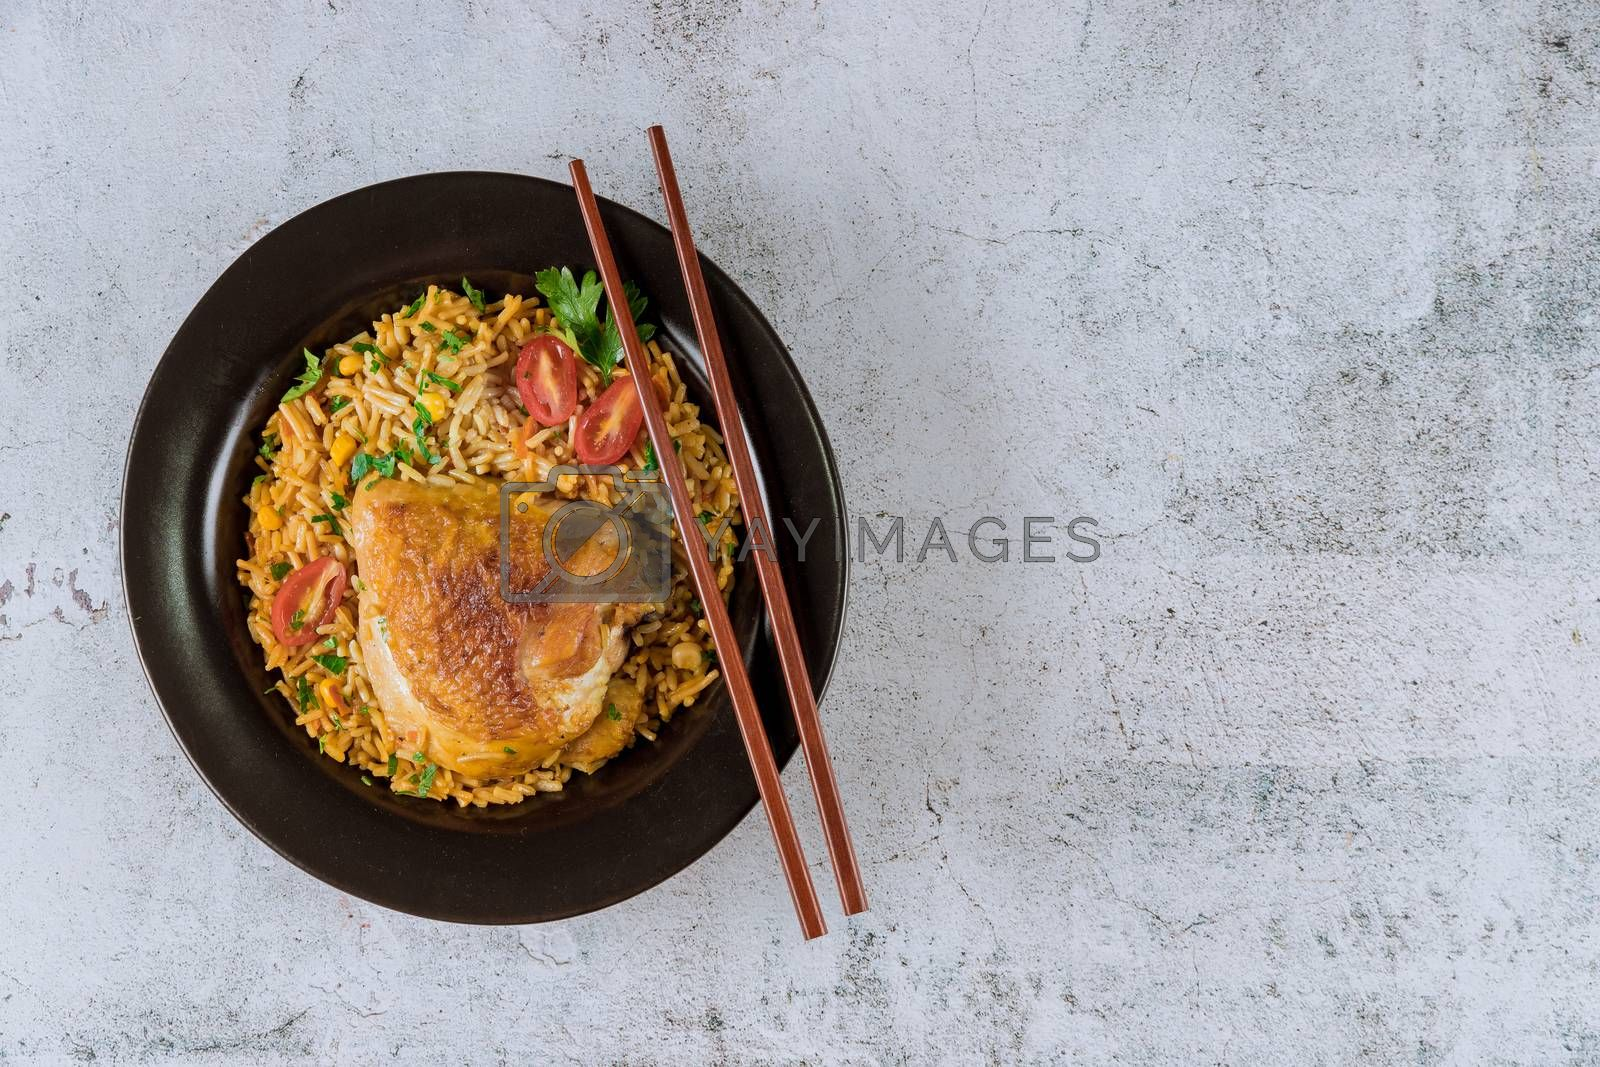 Fried pasta and rice chicken with parsley and tomatoes with chopsticks